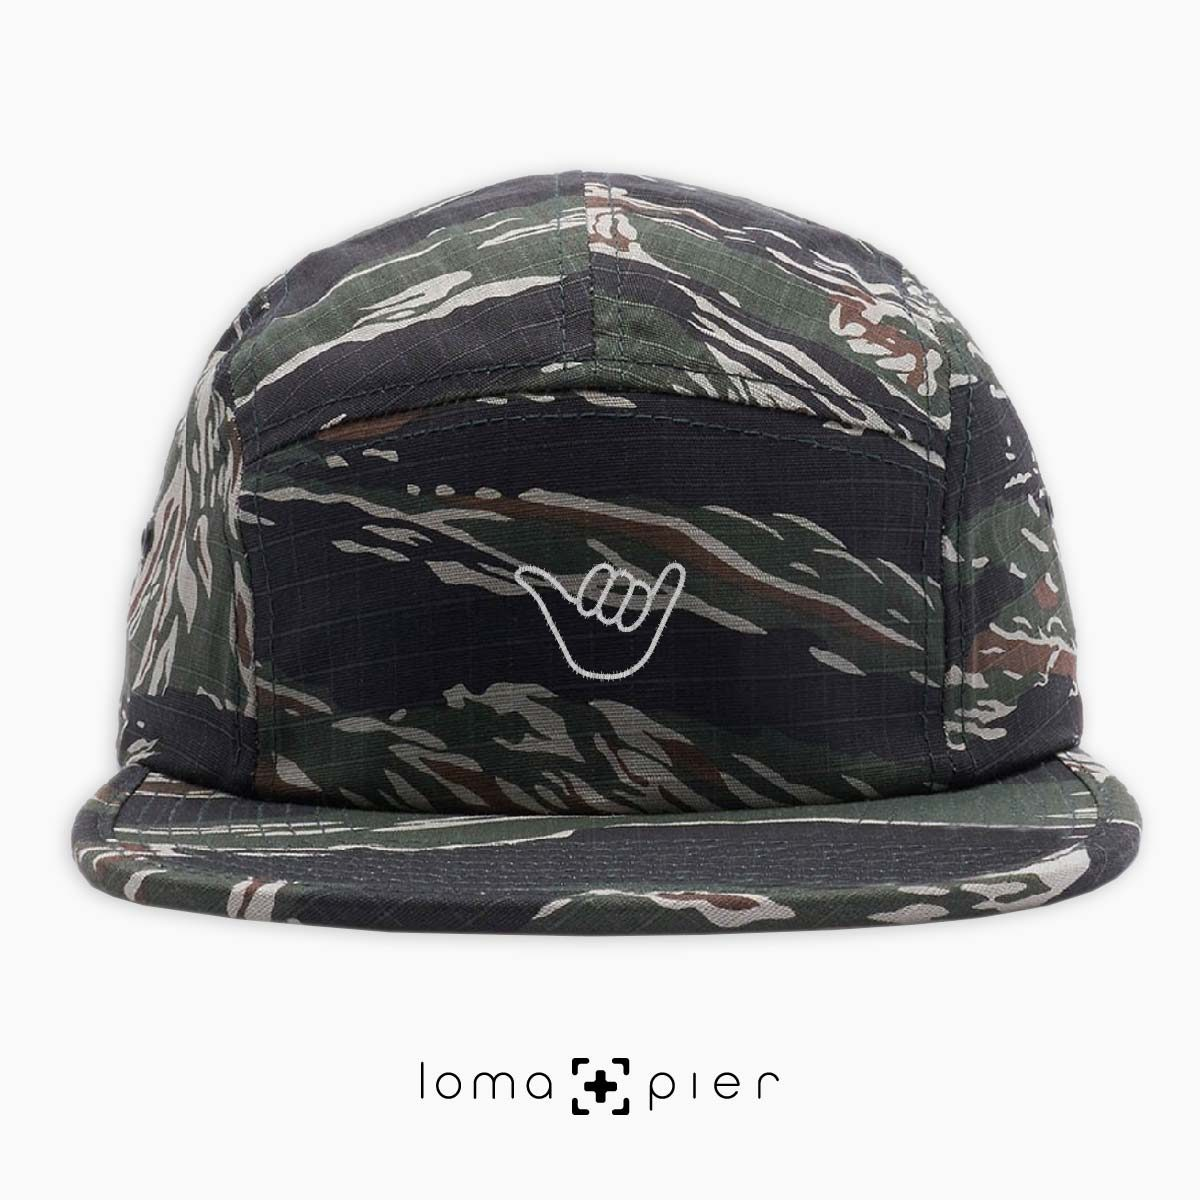 HANG LOOSE icon embroidered on a camo cotton 5-panel hat by loma+pier hat store